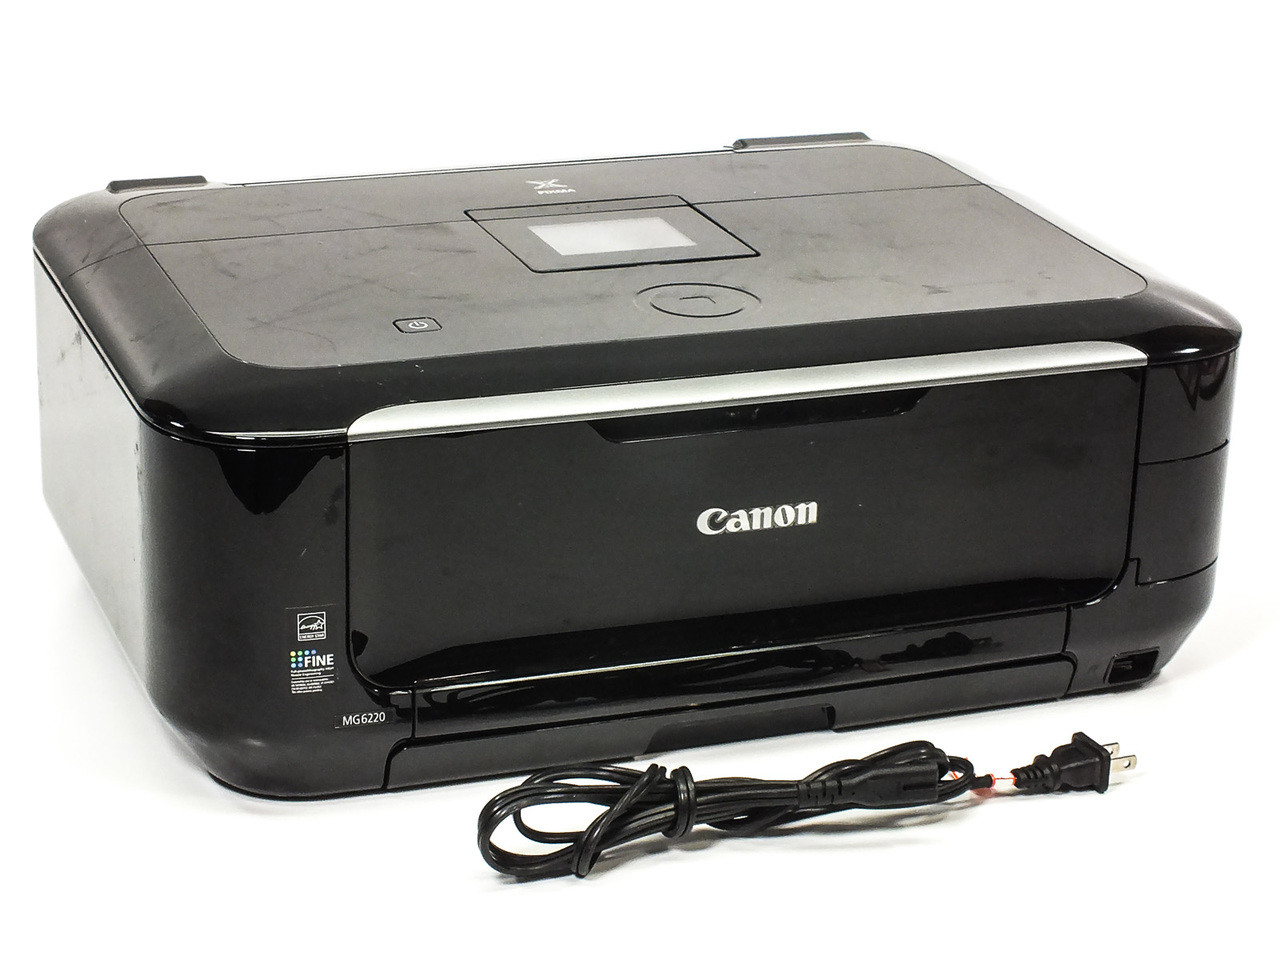 CANON 6220 DRIVERS FOR PC